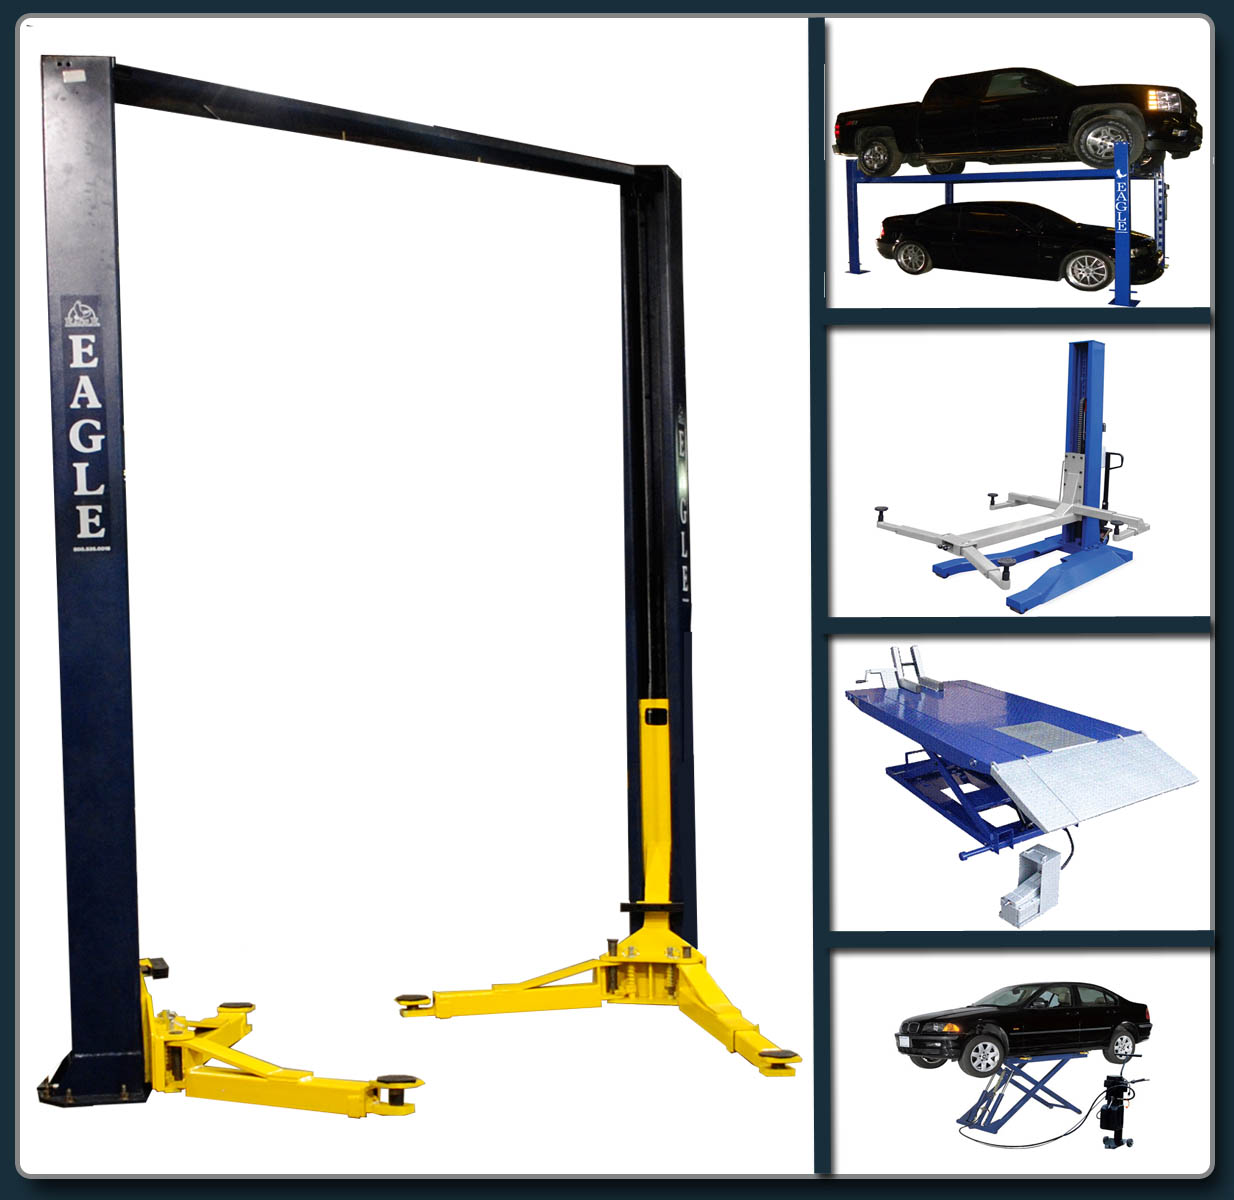 Automotive Lifts And Equipment : What is the best oil for my eagle lift equipment